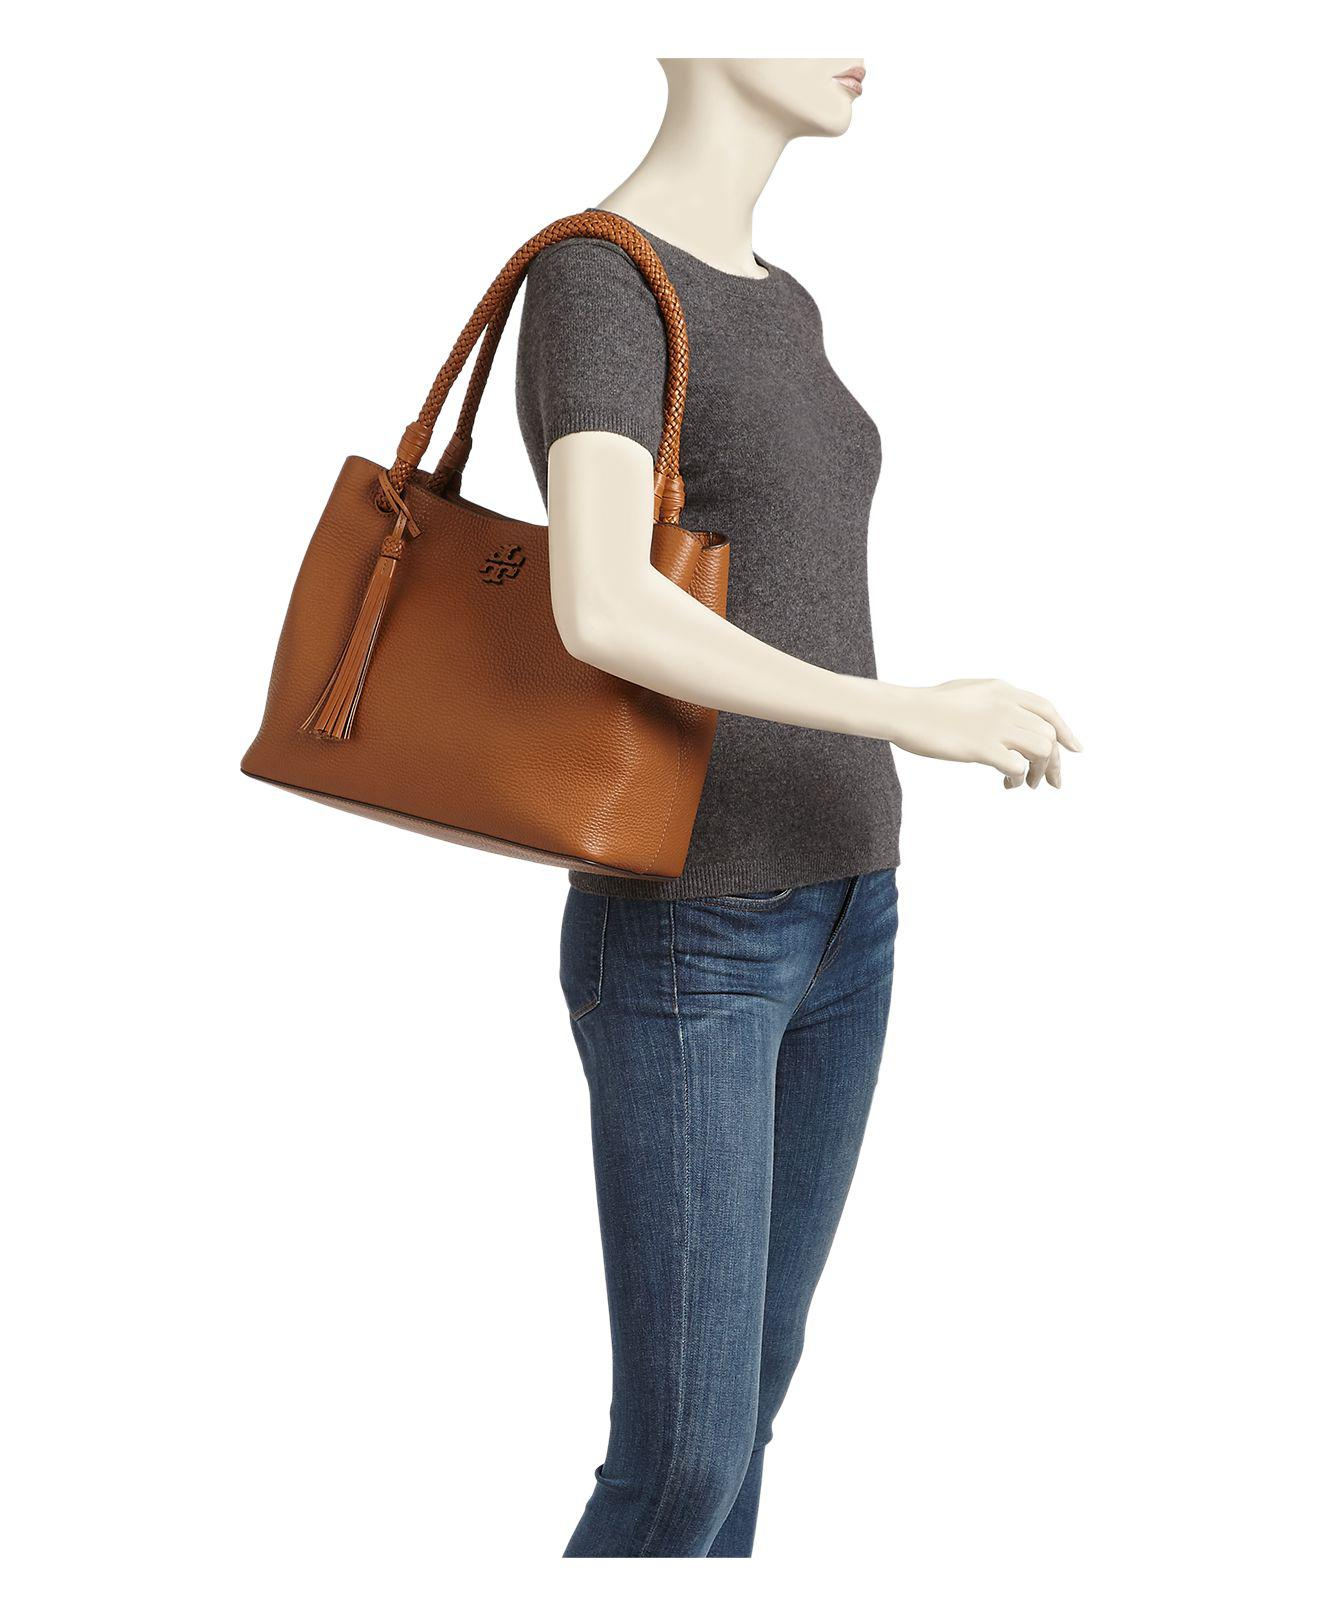 67d6051bff2d Lyst - Tory Burch Taylor Triple-compartment Leather Tote in Brown